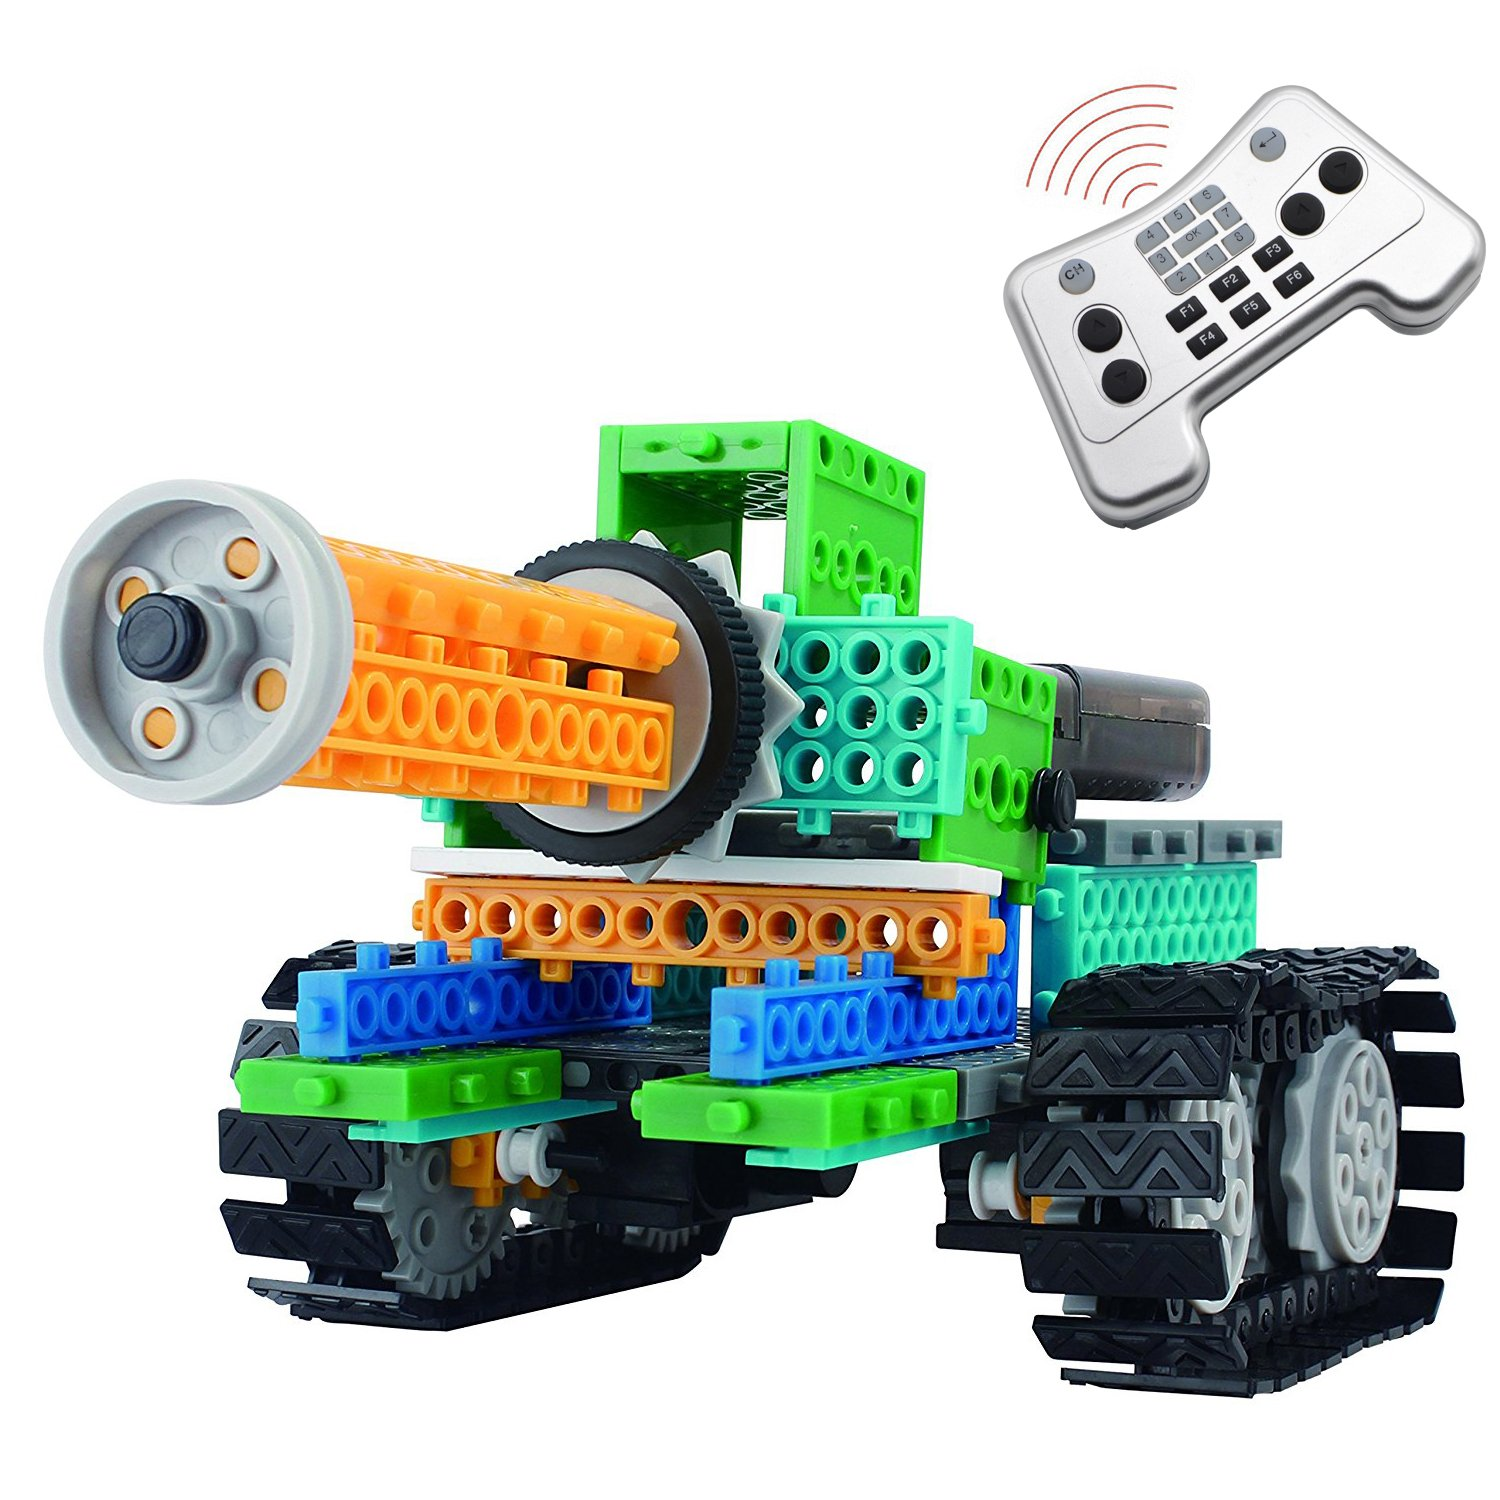 4 in 1 Robotic Kit, Remote Control Building Blocks, AMGlobal 237 Pcs Remote Control Building Kits, Remote Control Machine Educational Learning Robot KIts for Kids Children For Fun (237 Pcs) by AMGLOBAL